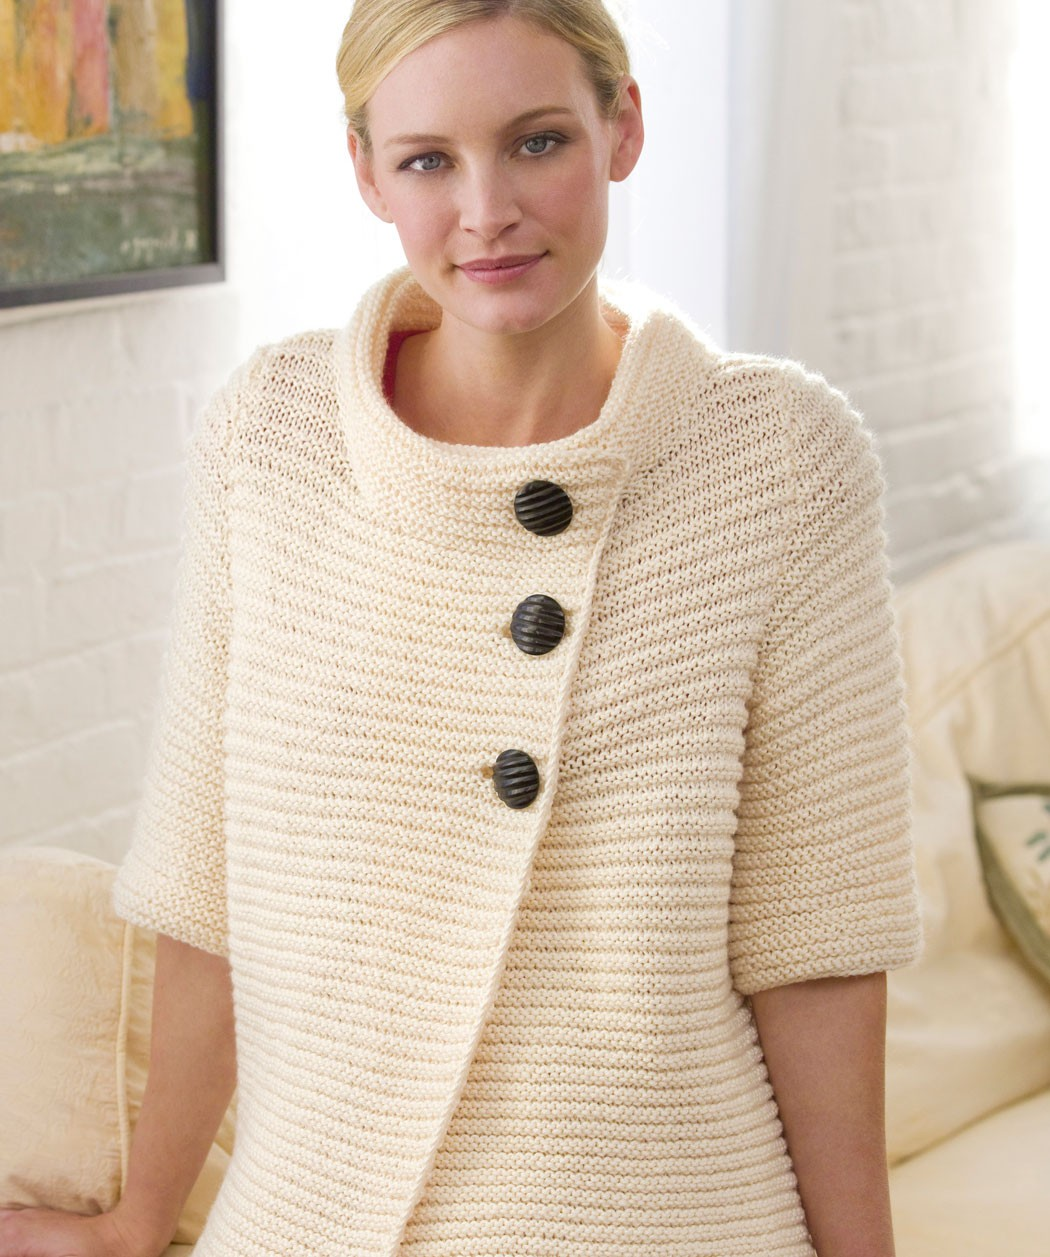 Jumper Patterns Knitting : Knitted Sweater Patterns for Women A Knitting Blog